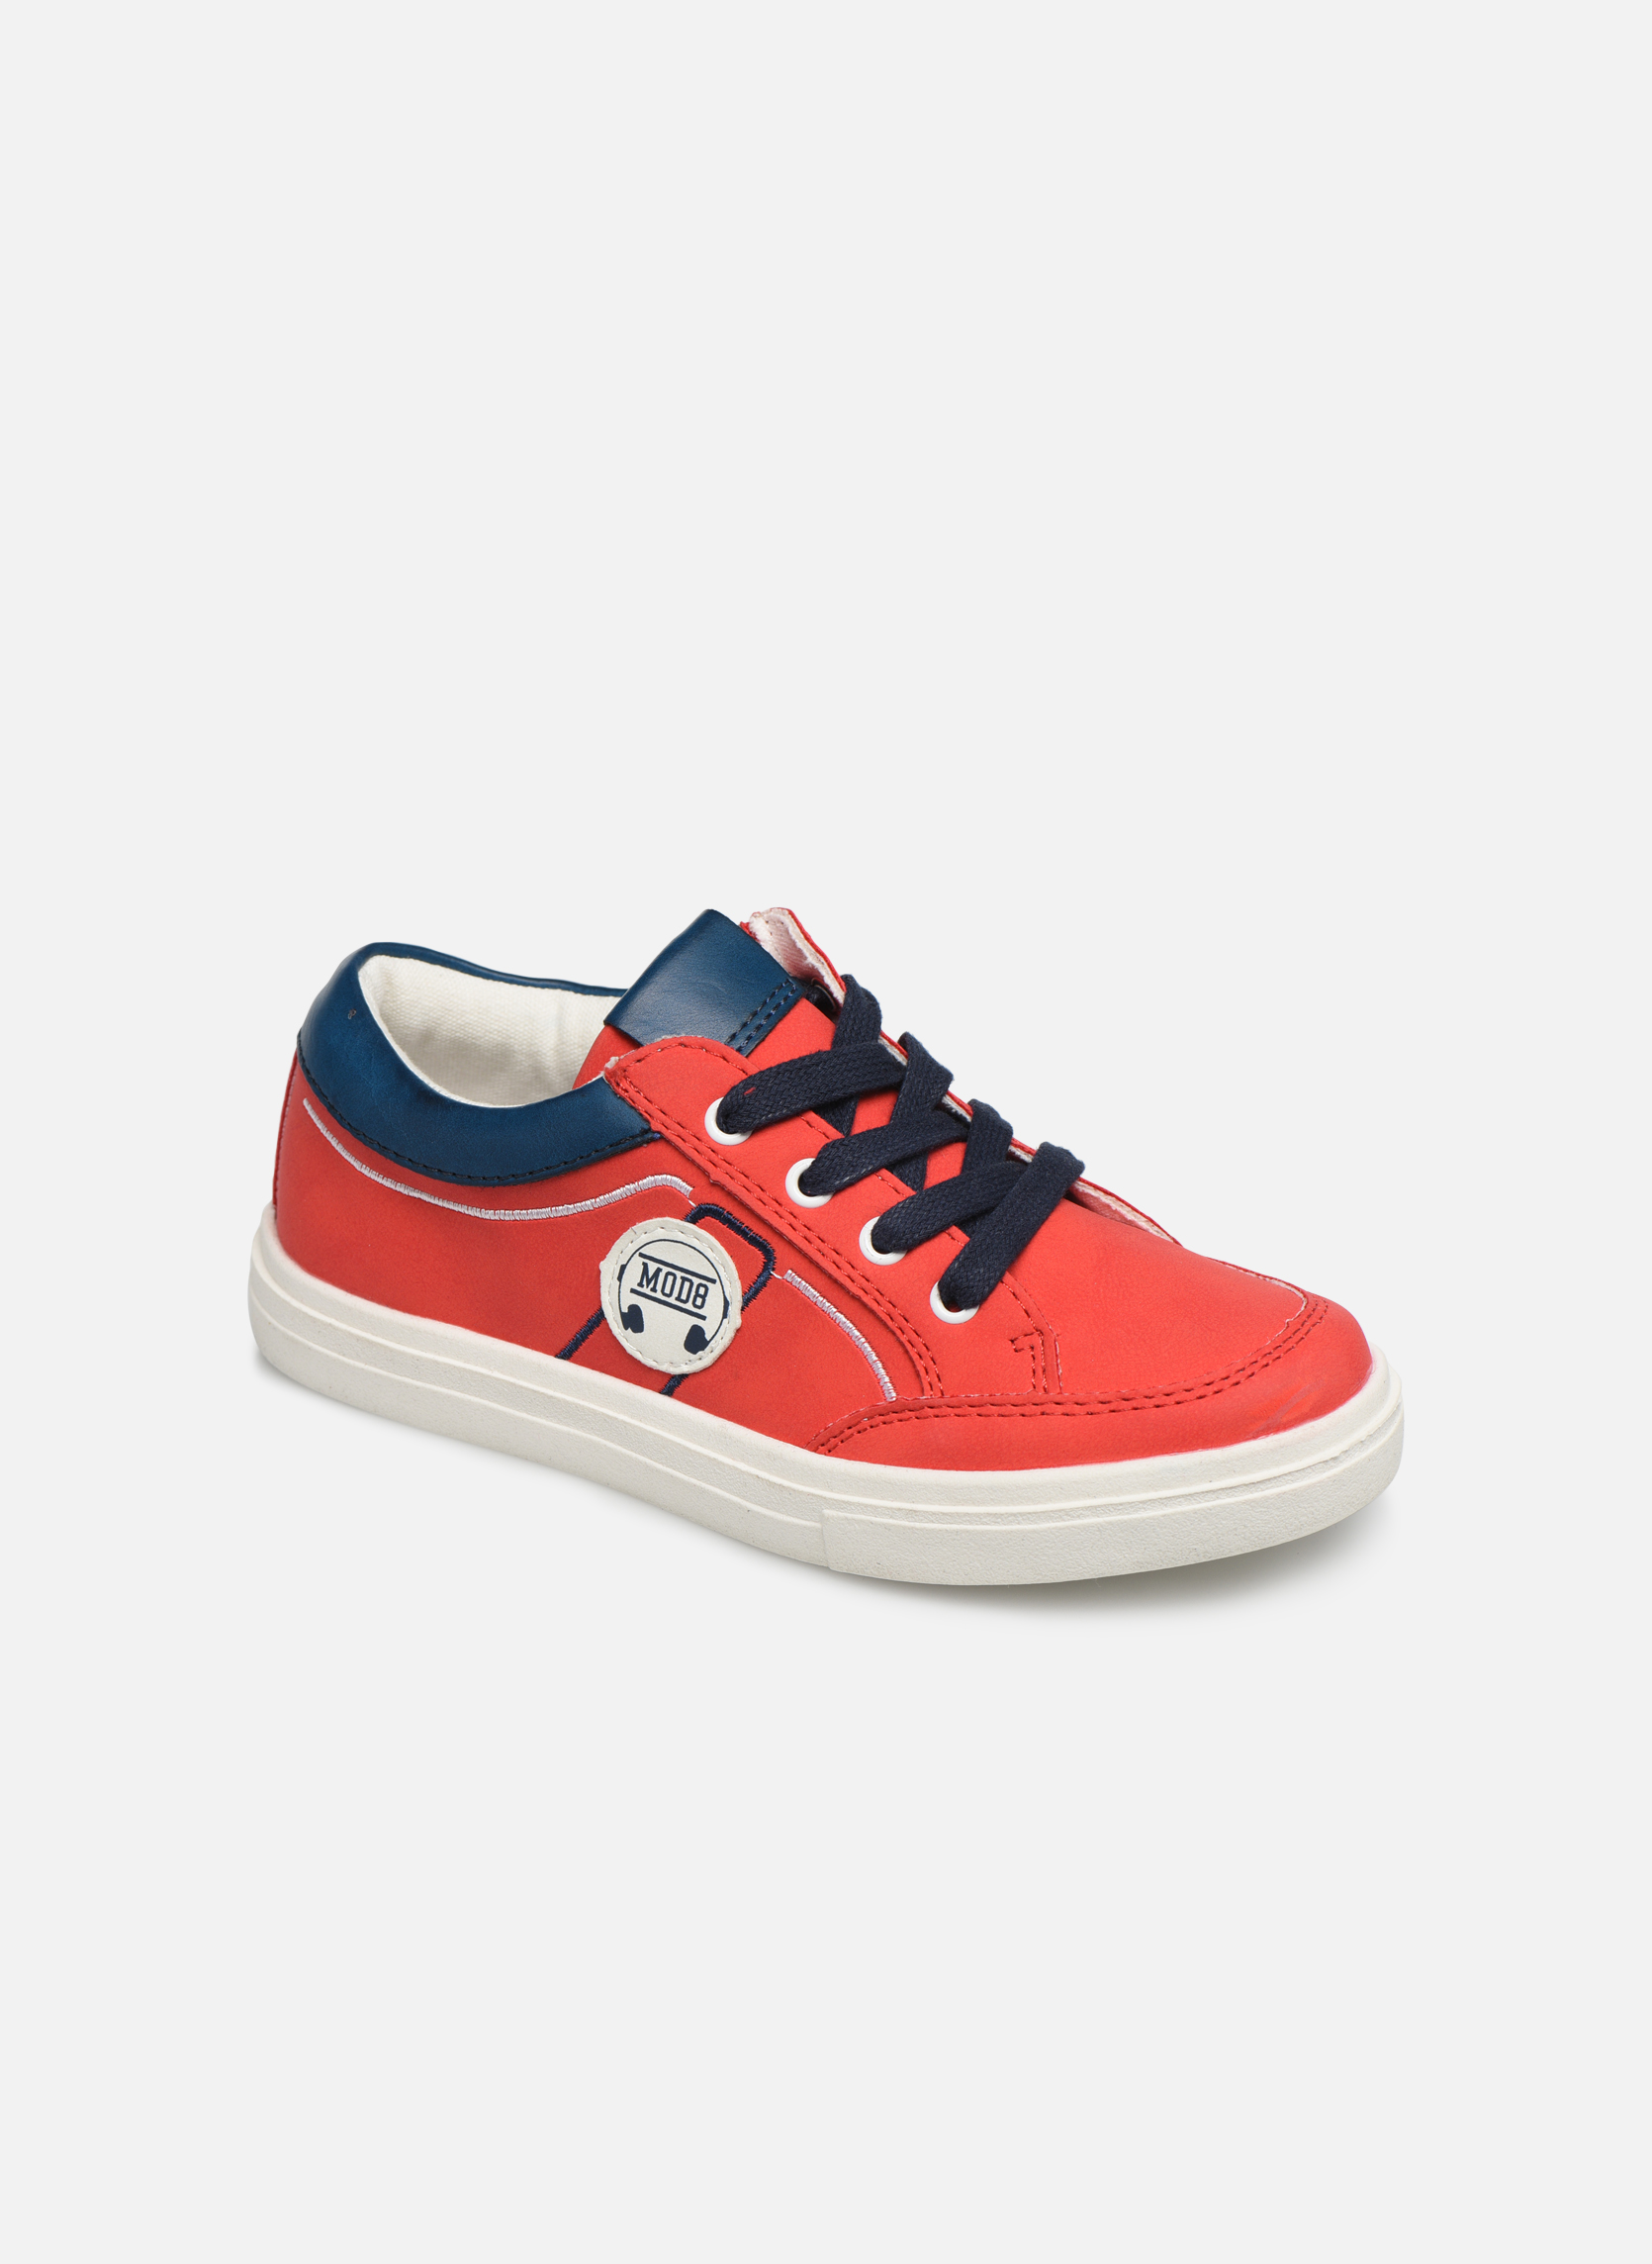 Sneakers Mod8 Rood